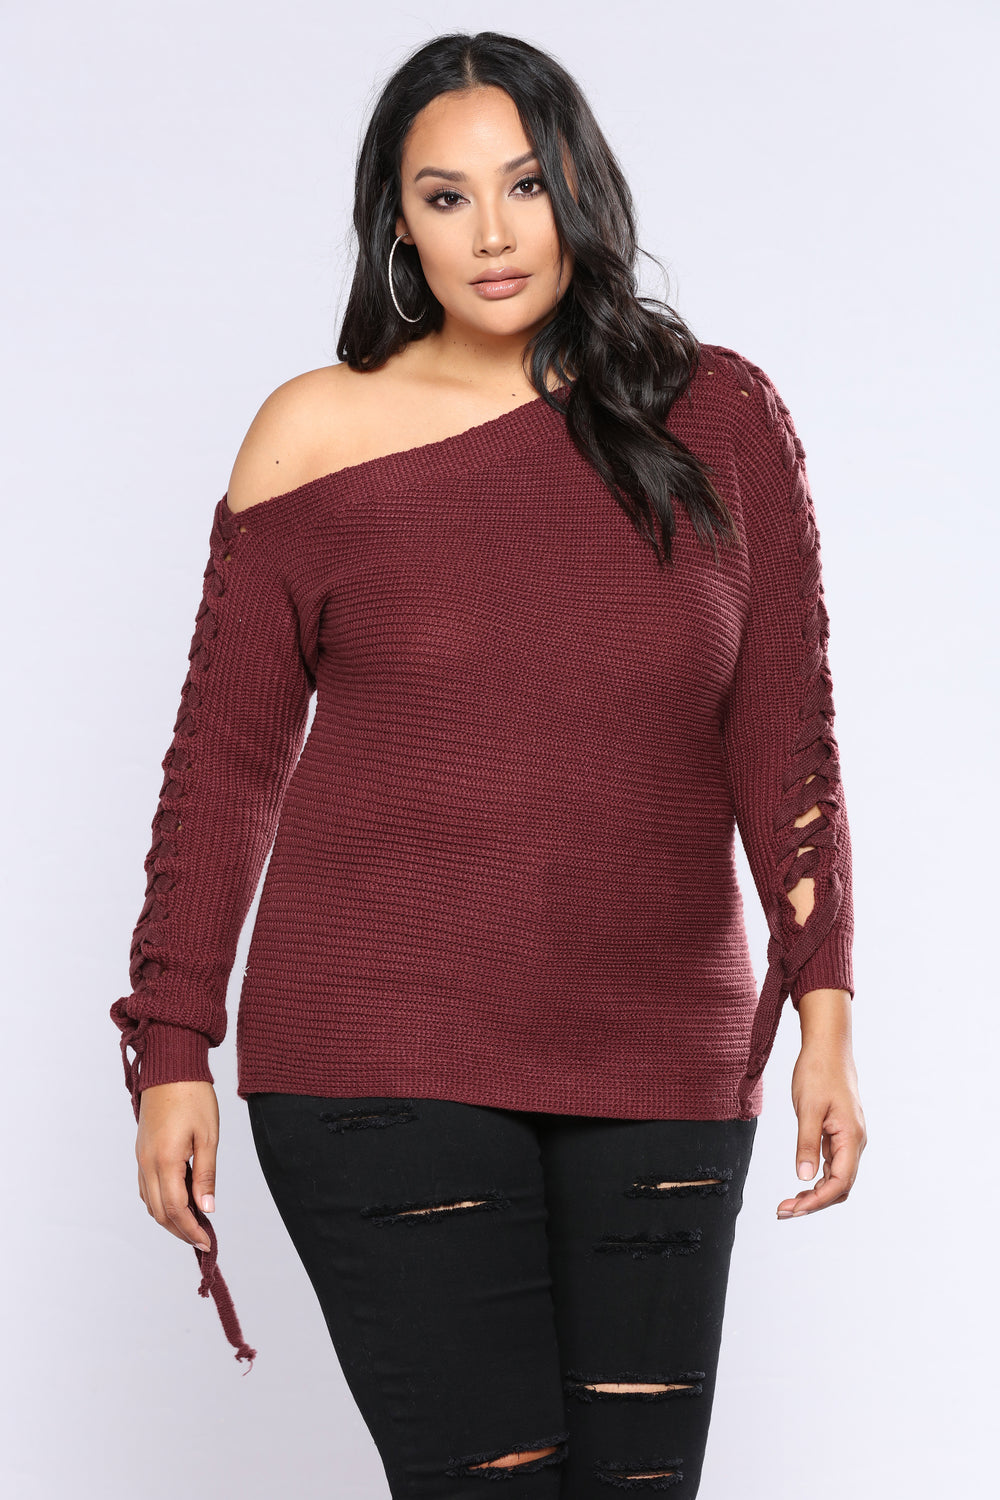 Are You Ready Lace Up Sweater - Wine